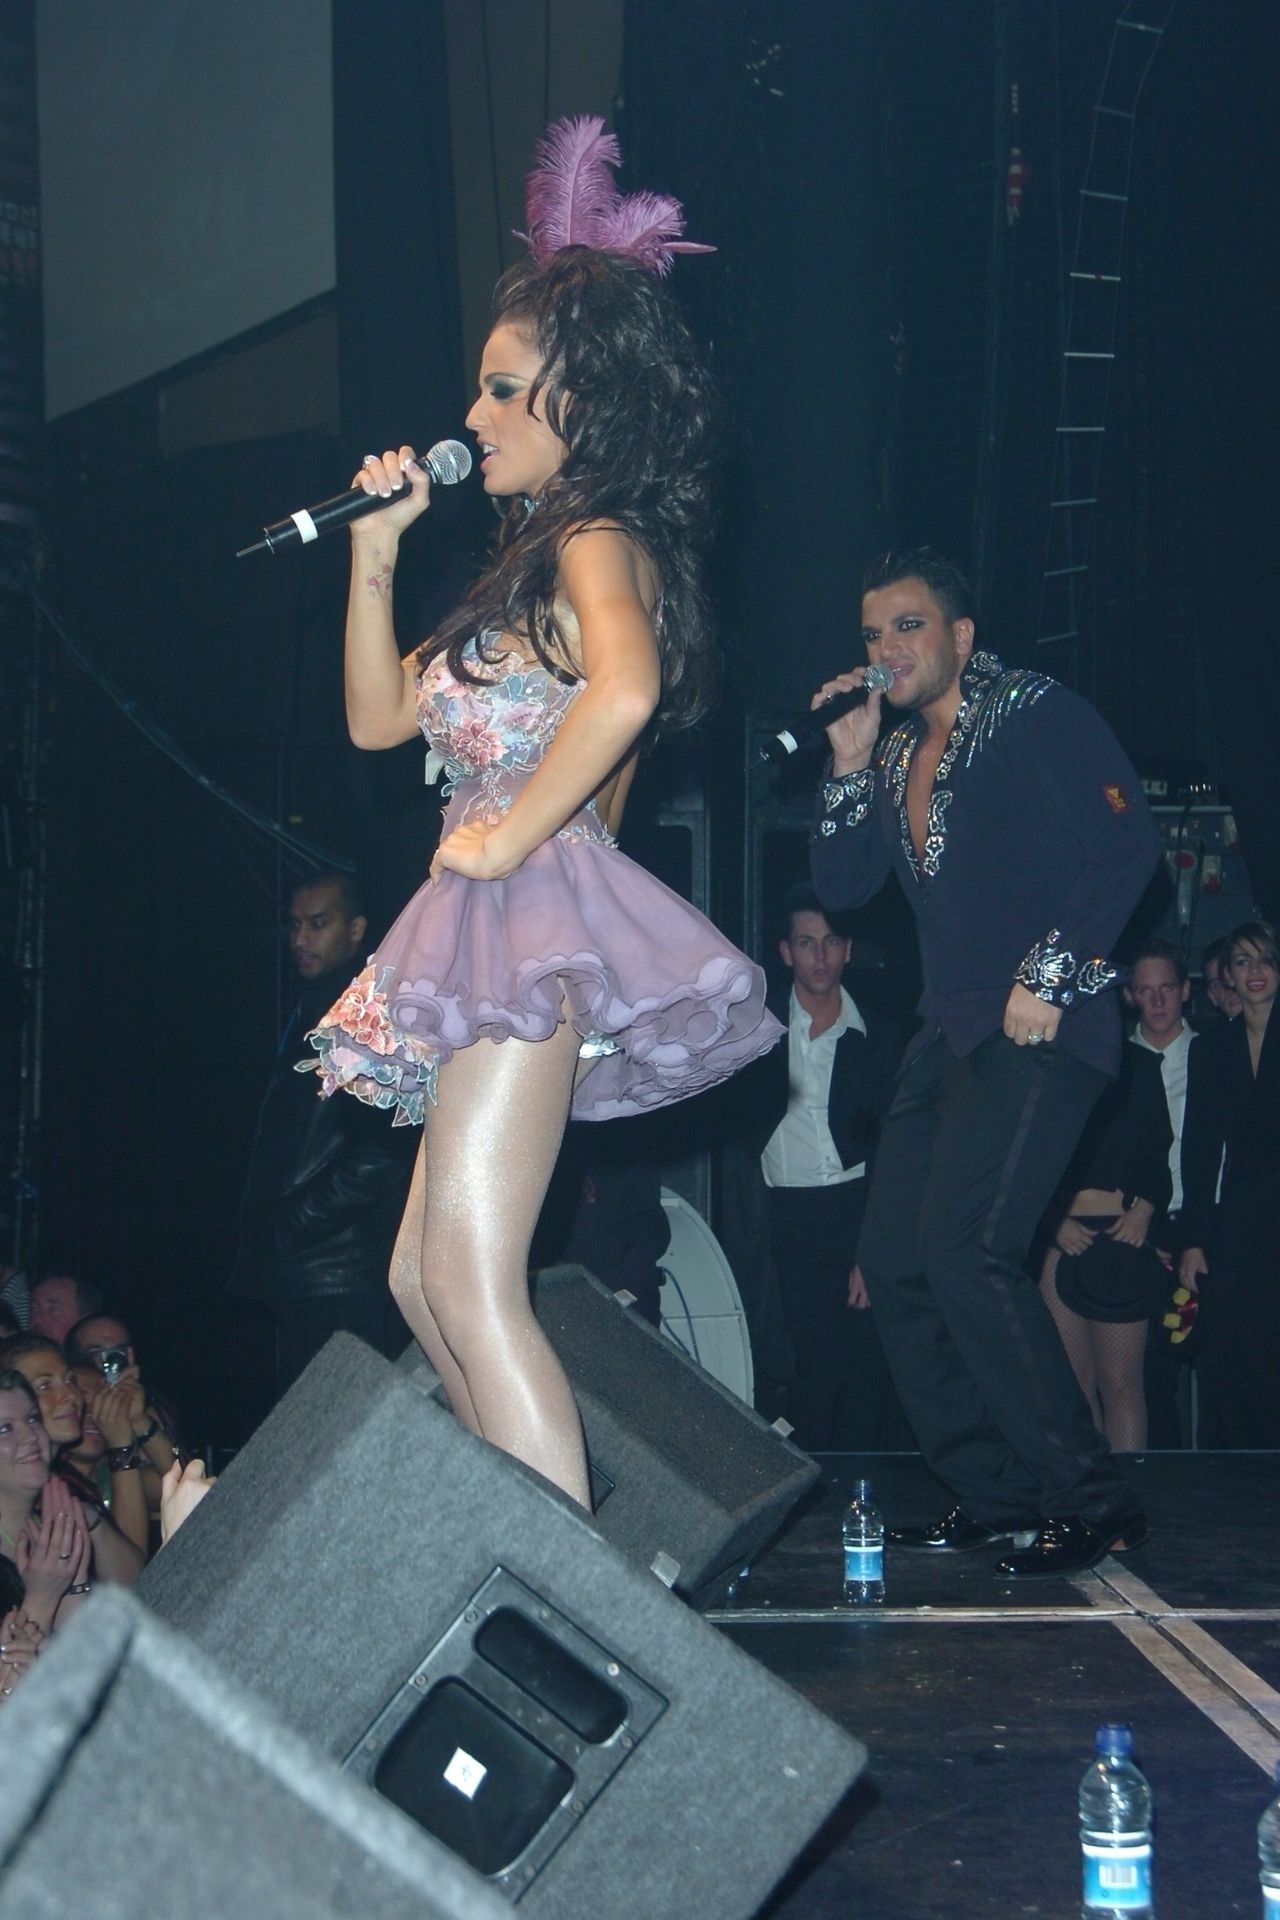 Katie Price & Peter Andre Perform At Gay Astoria In London 0026